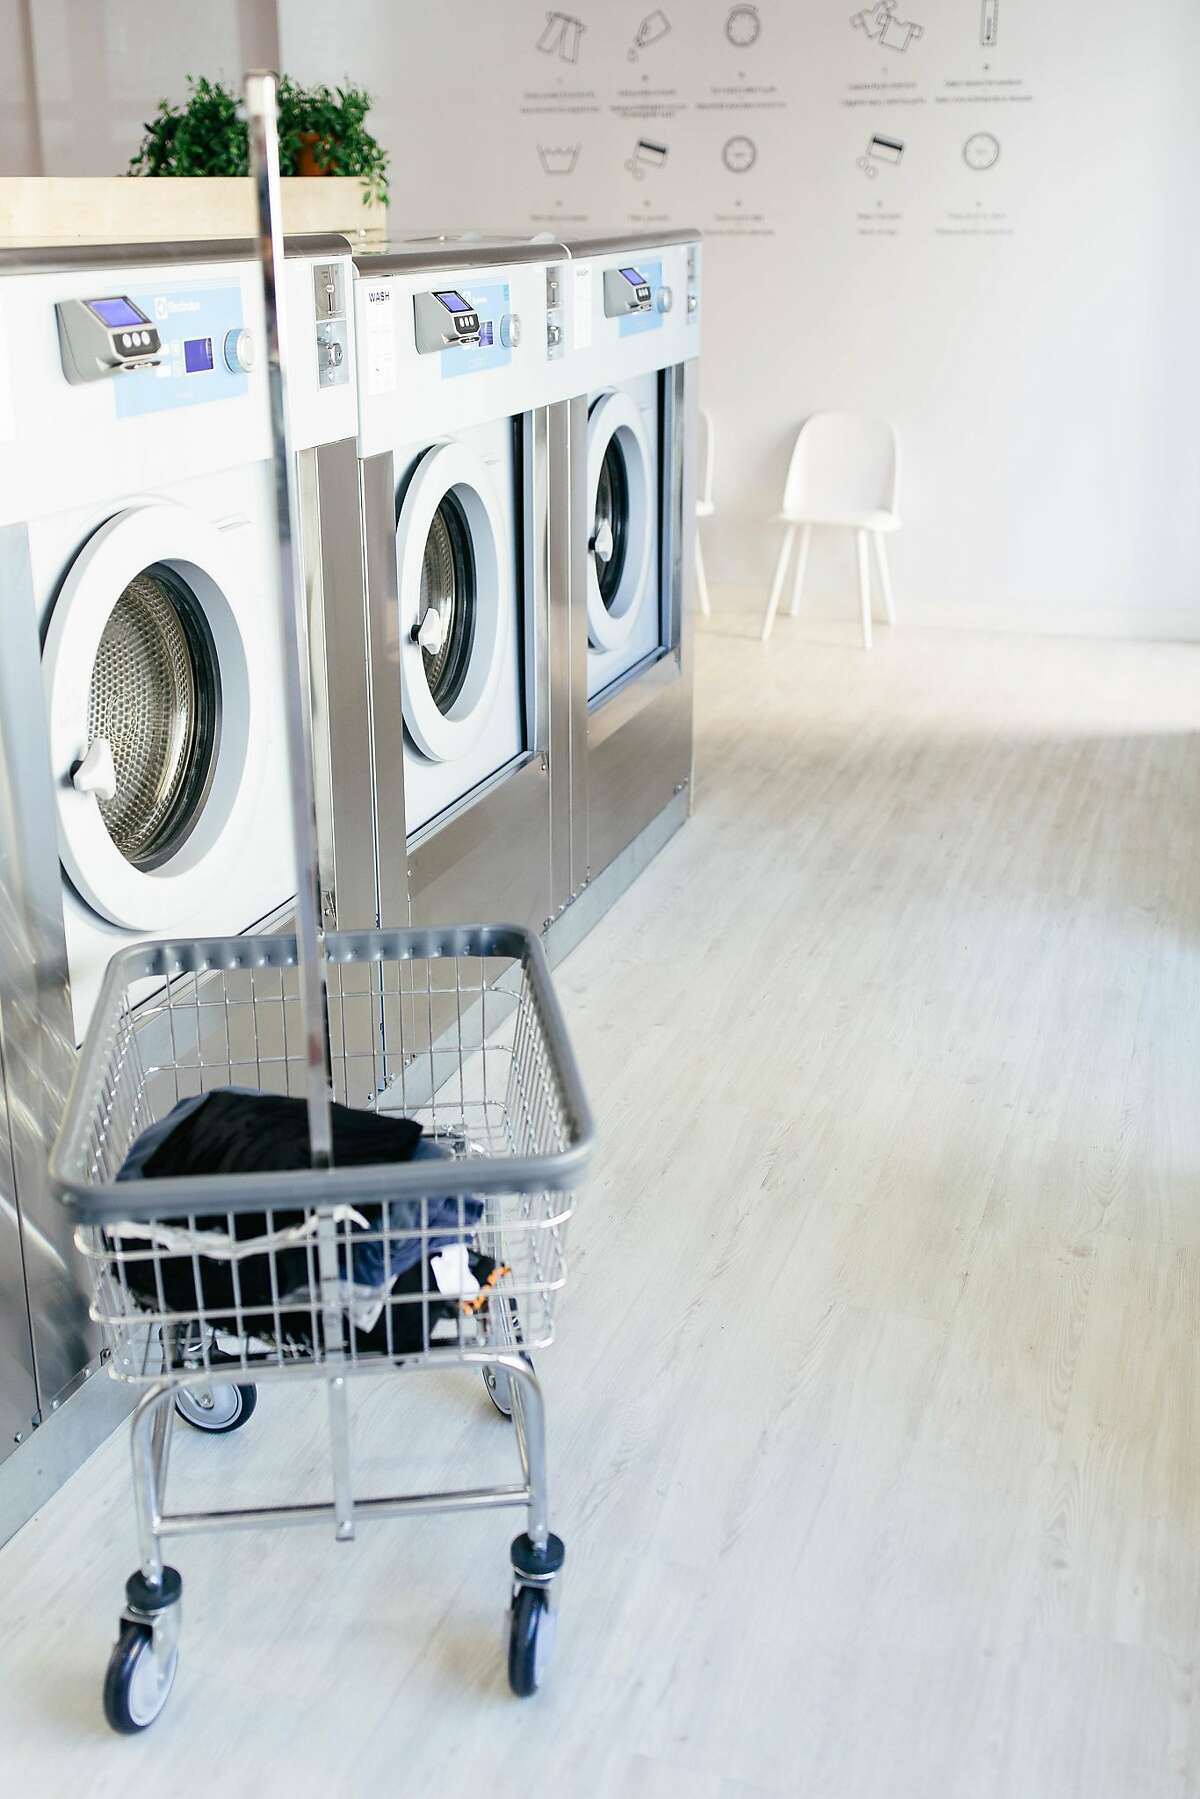 Since opening in the Mission in 2017, Laundré took it upon itself to elevate the dated Laundromat by combining a cafe serving usual suspects (chia pudding, avocado toast) with a fleet of modern washers and dryers. It announced Monday that its café will close following community controversy and high utility prices.